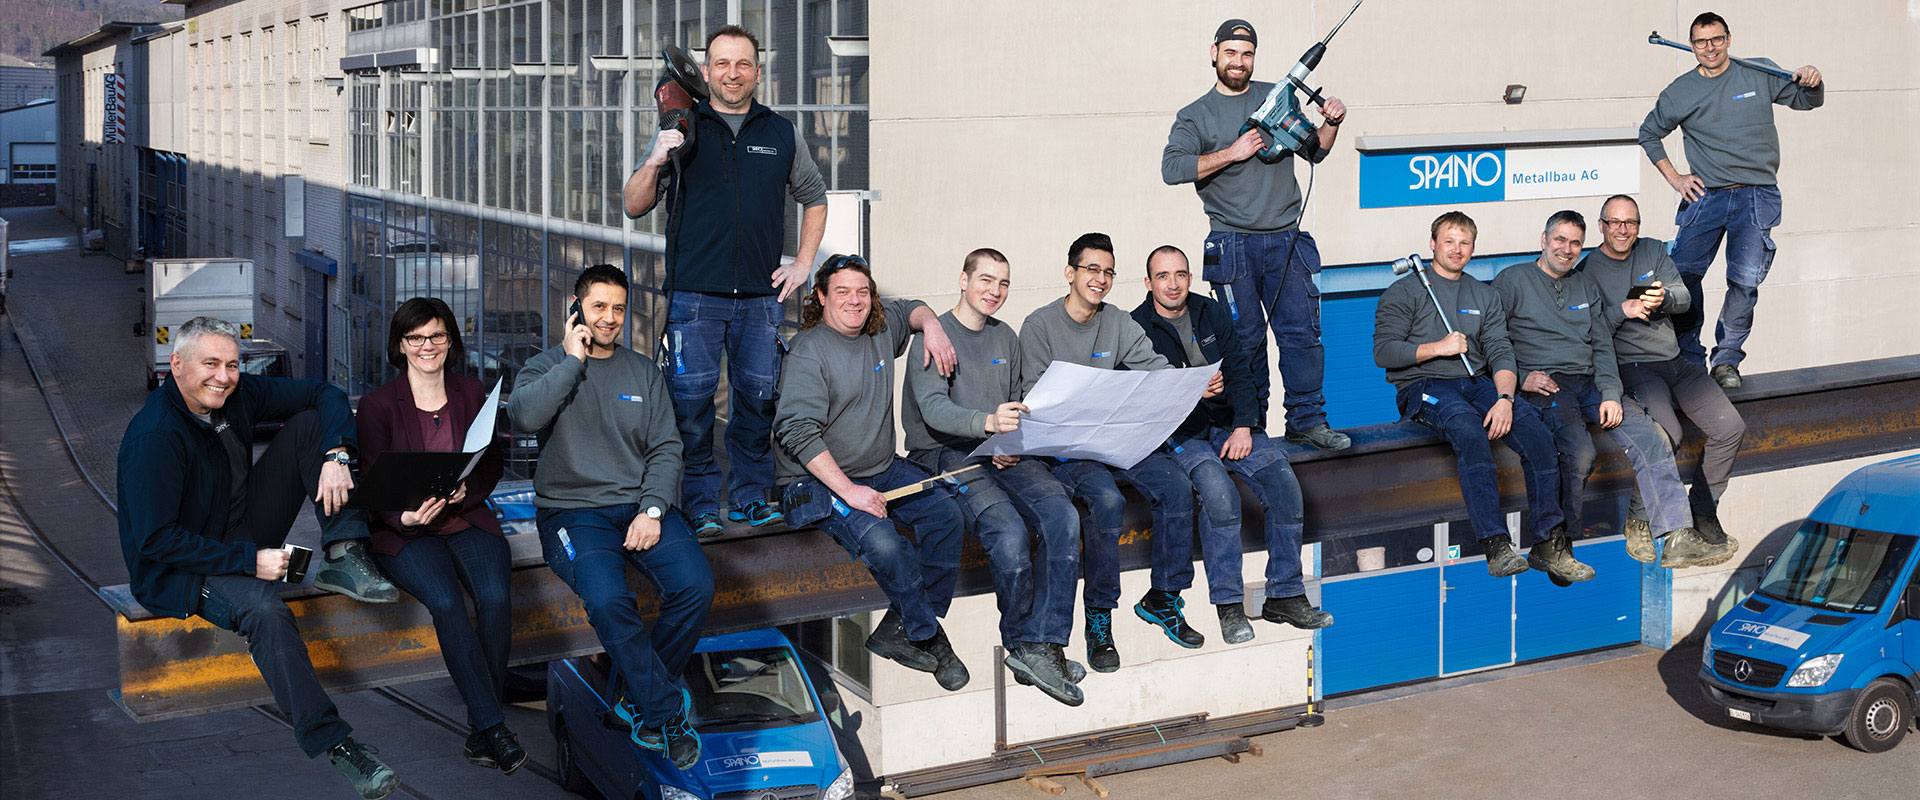 Spano Metallbau AG Team